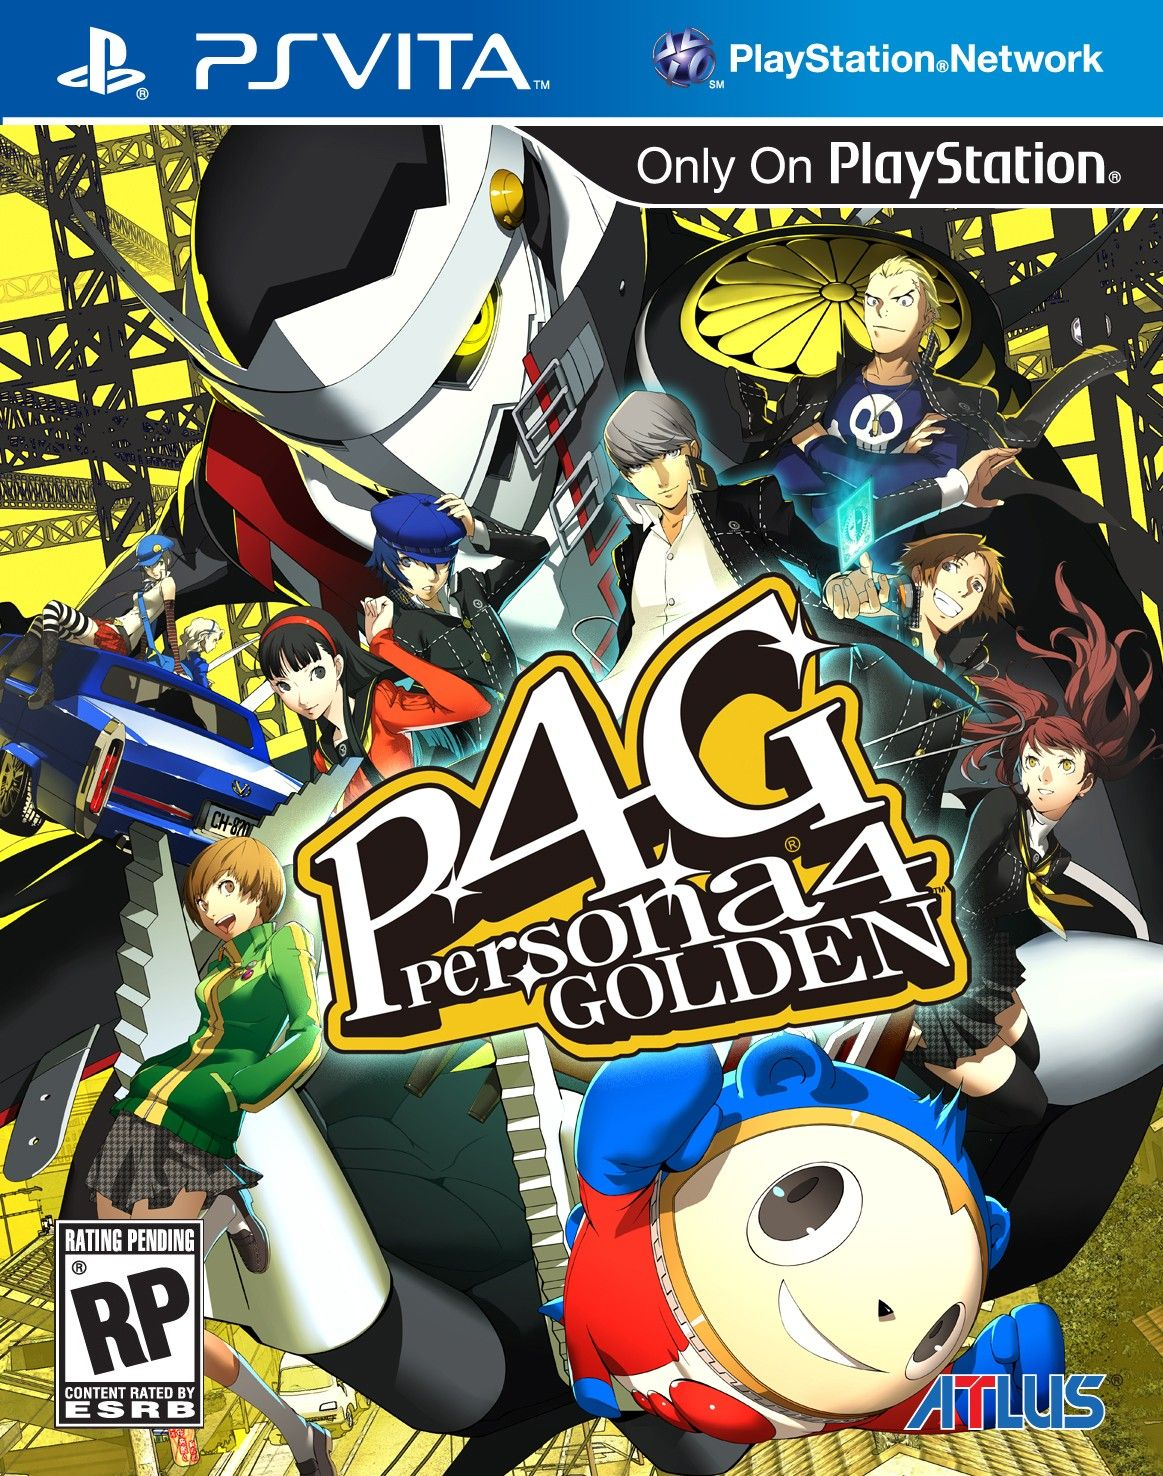 Persona 4 Golden | Games | Ps vita games, Ps4 games, Japan games